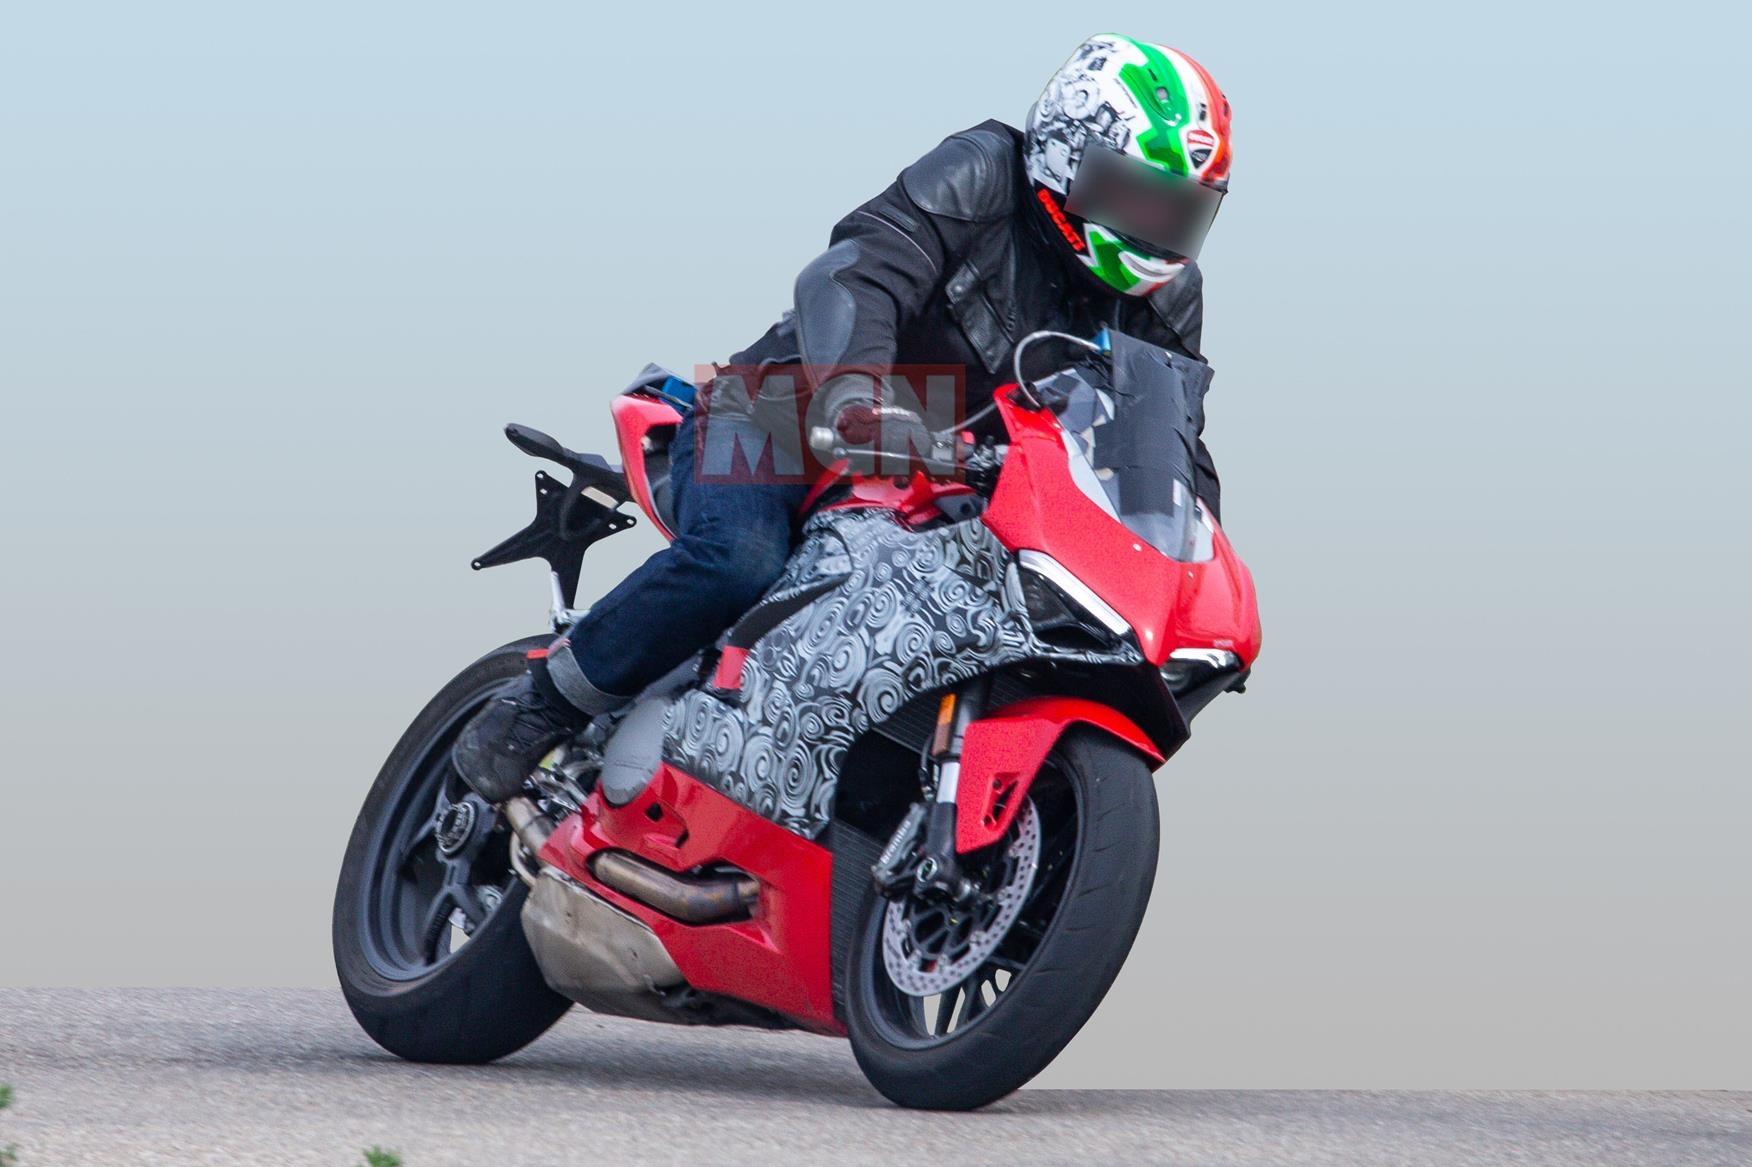 Ducati Panigale 959 spy shot front